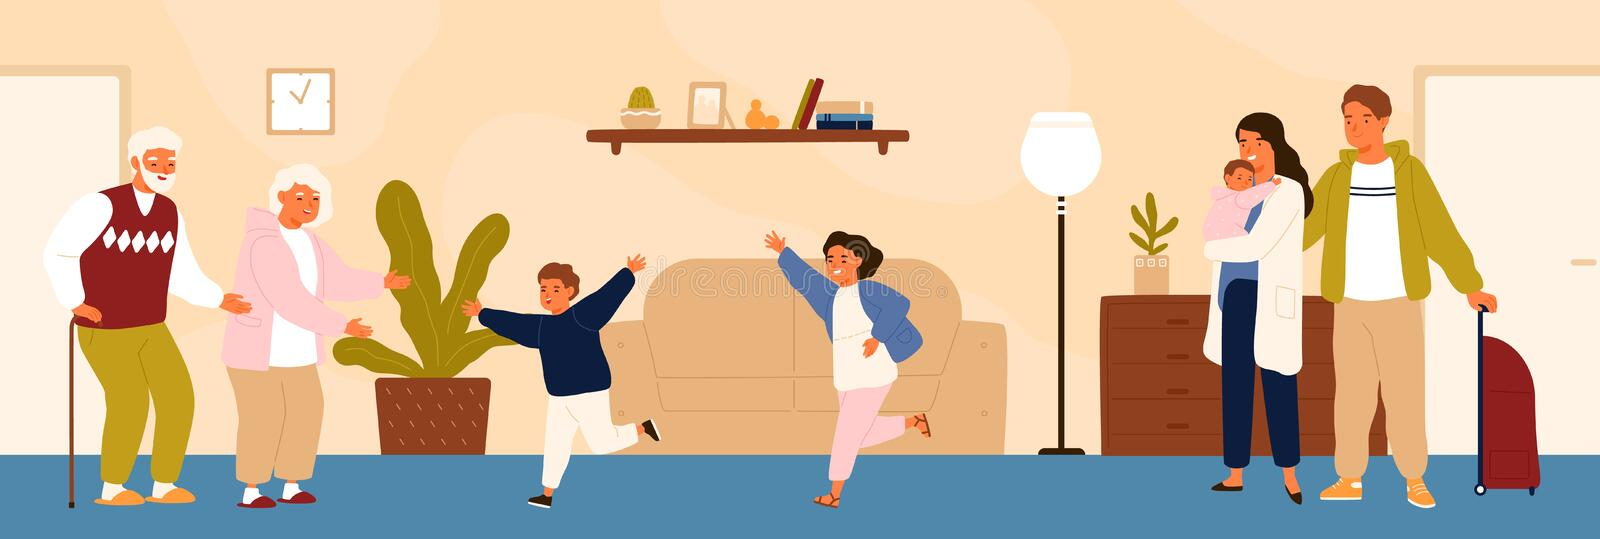 Joyful grandchildren meeting their grandparents. Happy family visiting grandfather and grandmother. Grandson and stock illustration